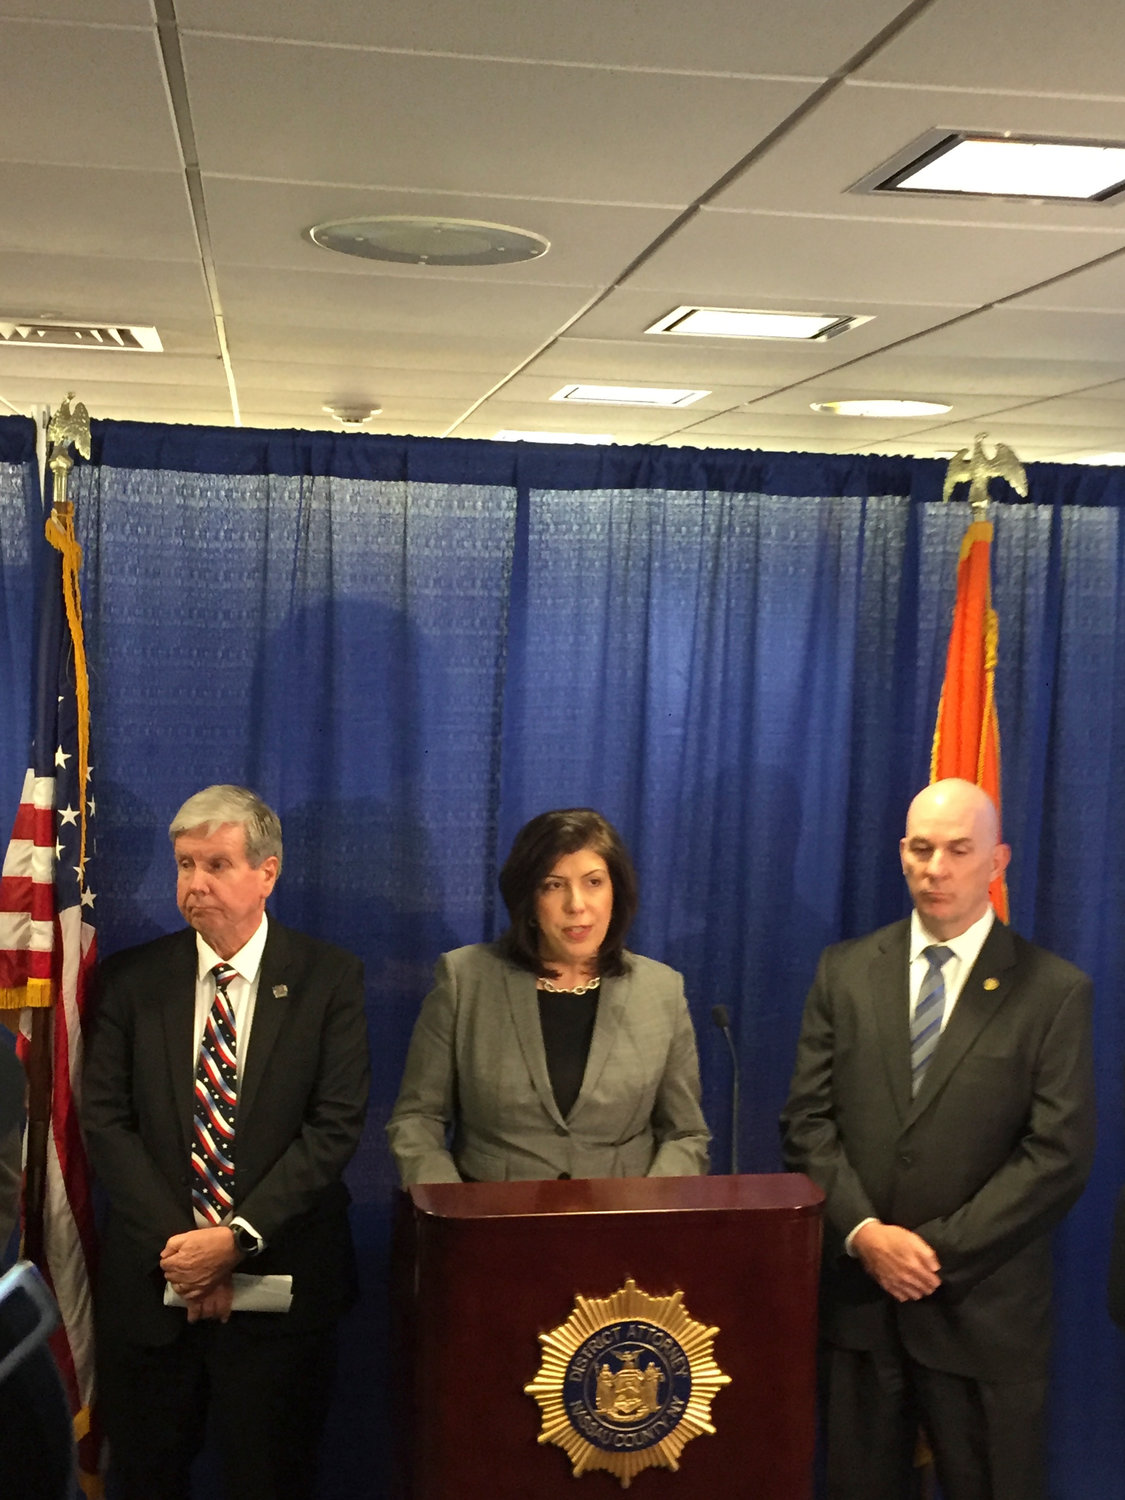 Nassau District Attorney Madeline Singas outlined the charges on April 17 against six alleged MS-13 gang members who allegedly murdered two individuals in December. On her right was John Ryan, the chief Queens assistant district attorney, and on her left was Thomas DePaola, the Nassau deputy chief of detectives and assistant chief.